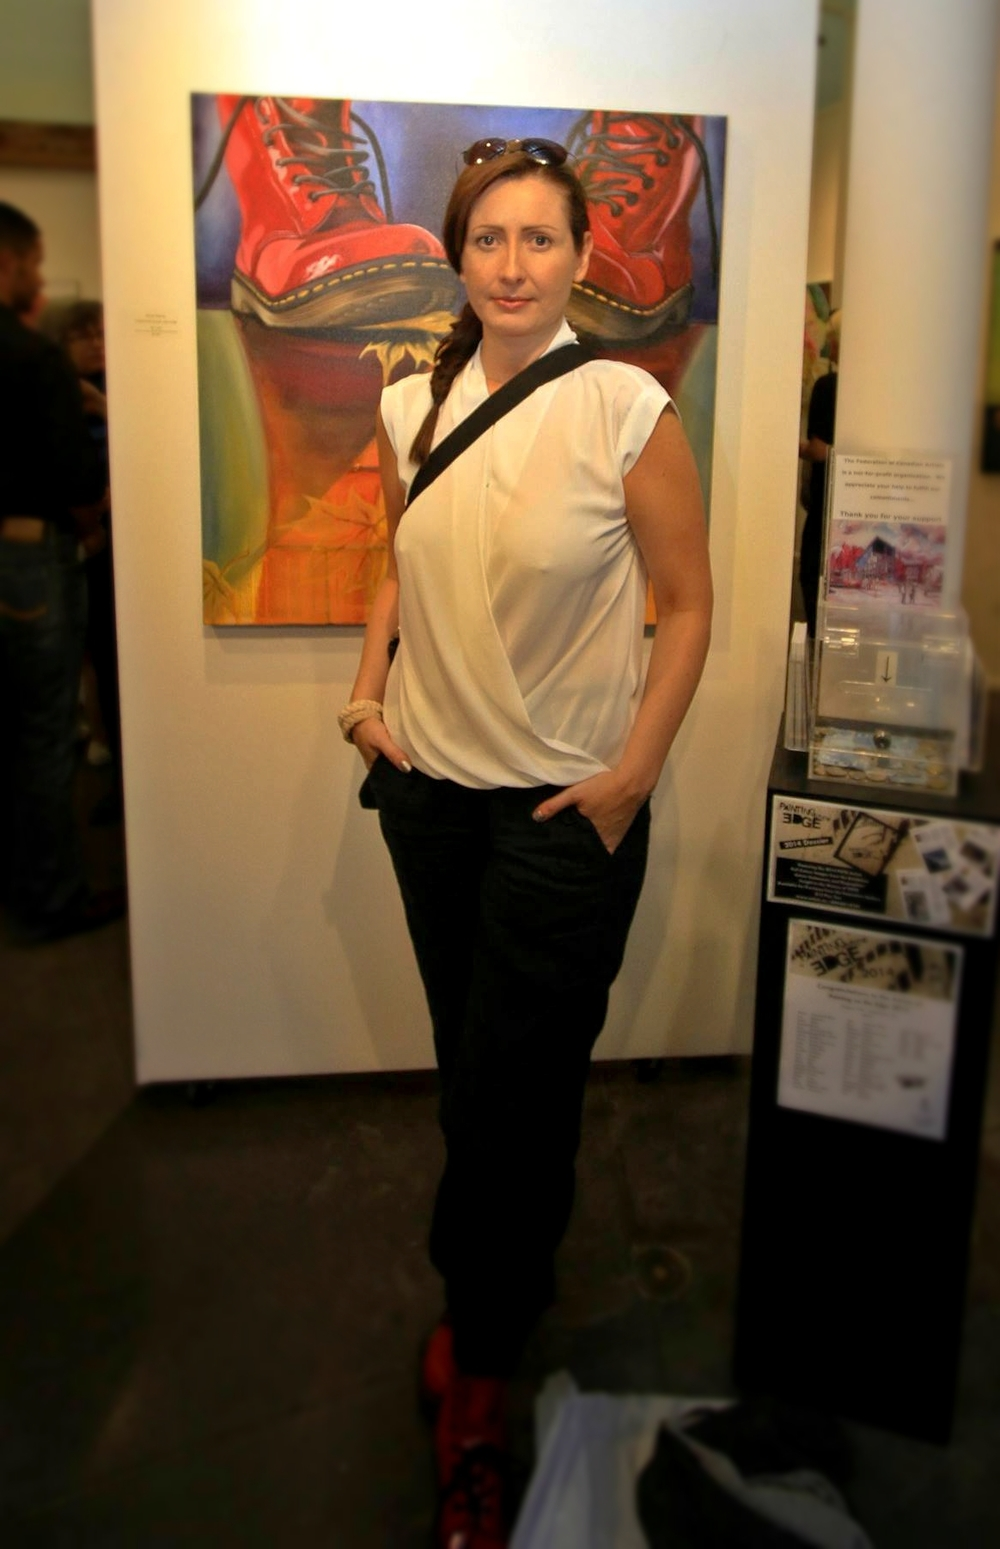 Brandy Saturley at Painting on the Edge 2014 - Federation Gallery, Granville Island, Vancouver BC, CANADA